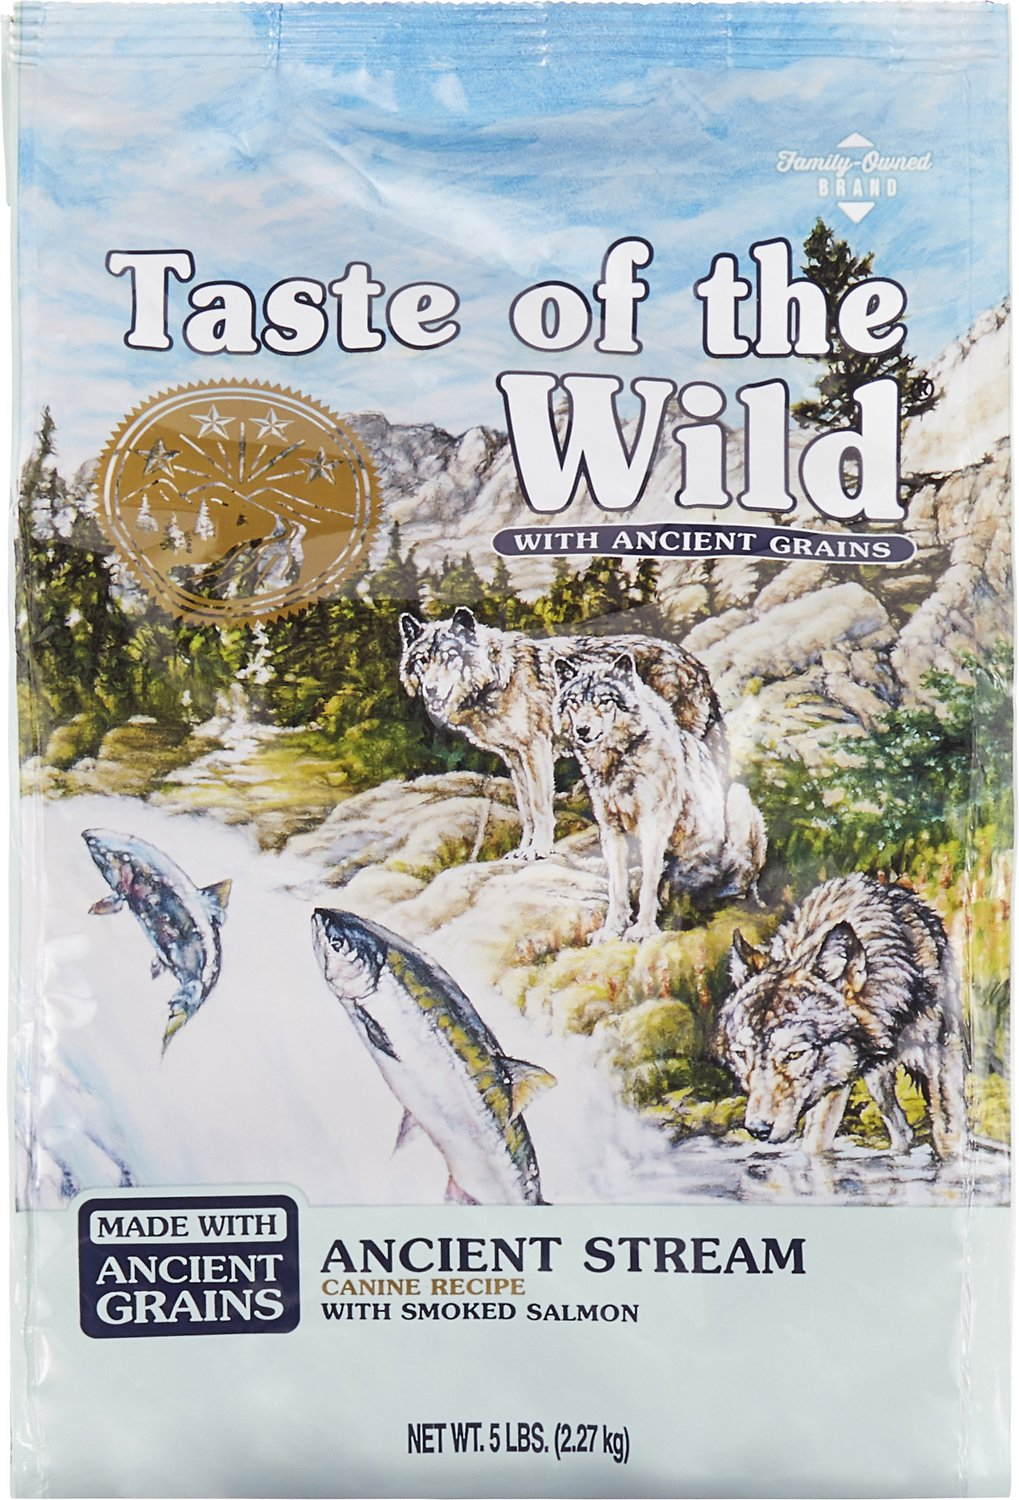 Taste of the Wild Ancient Stream with Ancient Grains Dry Dog Food Image